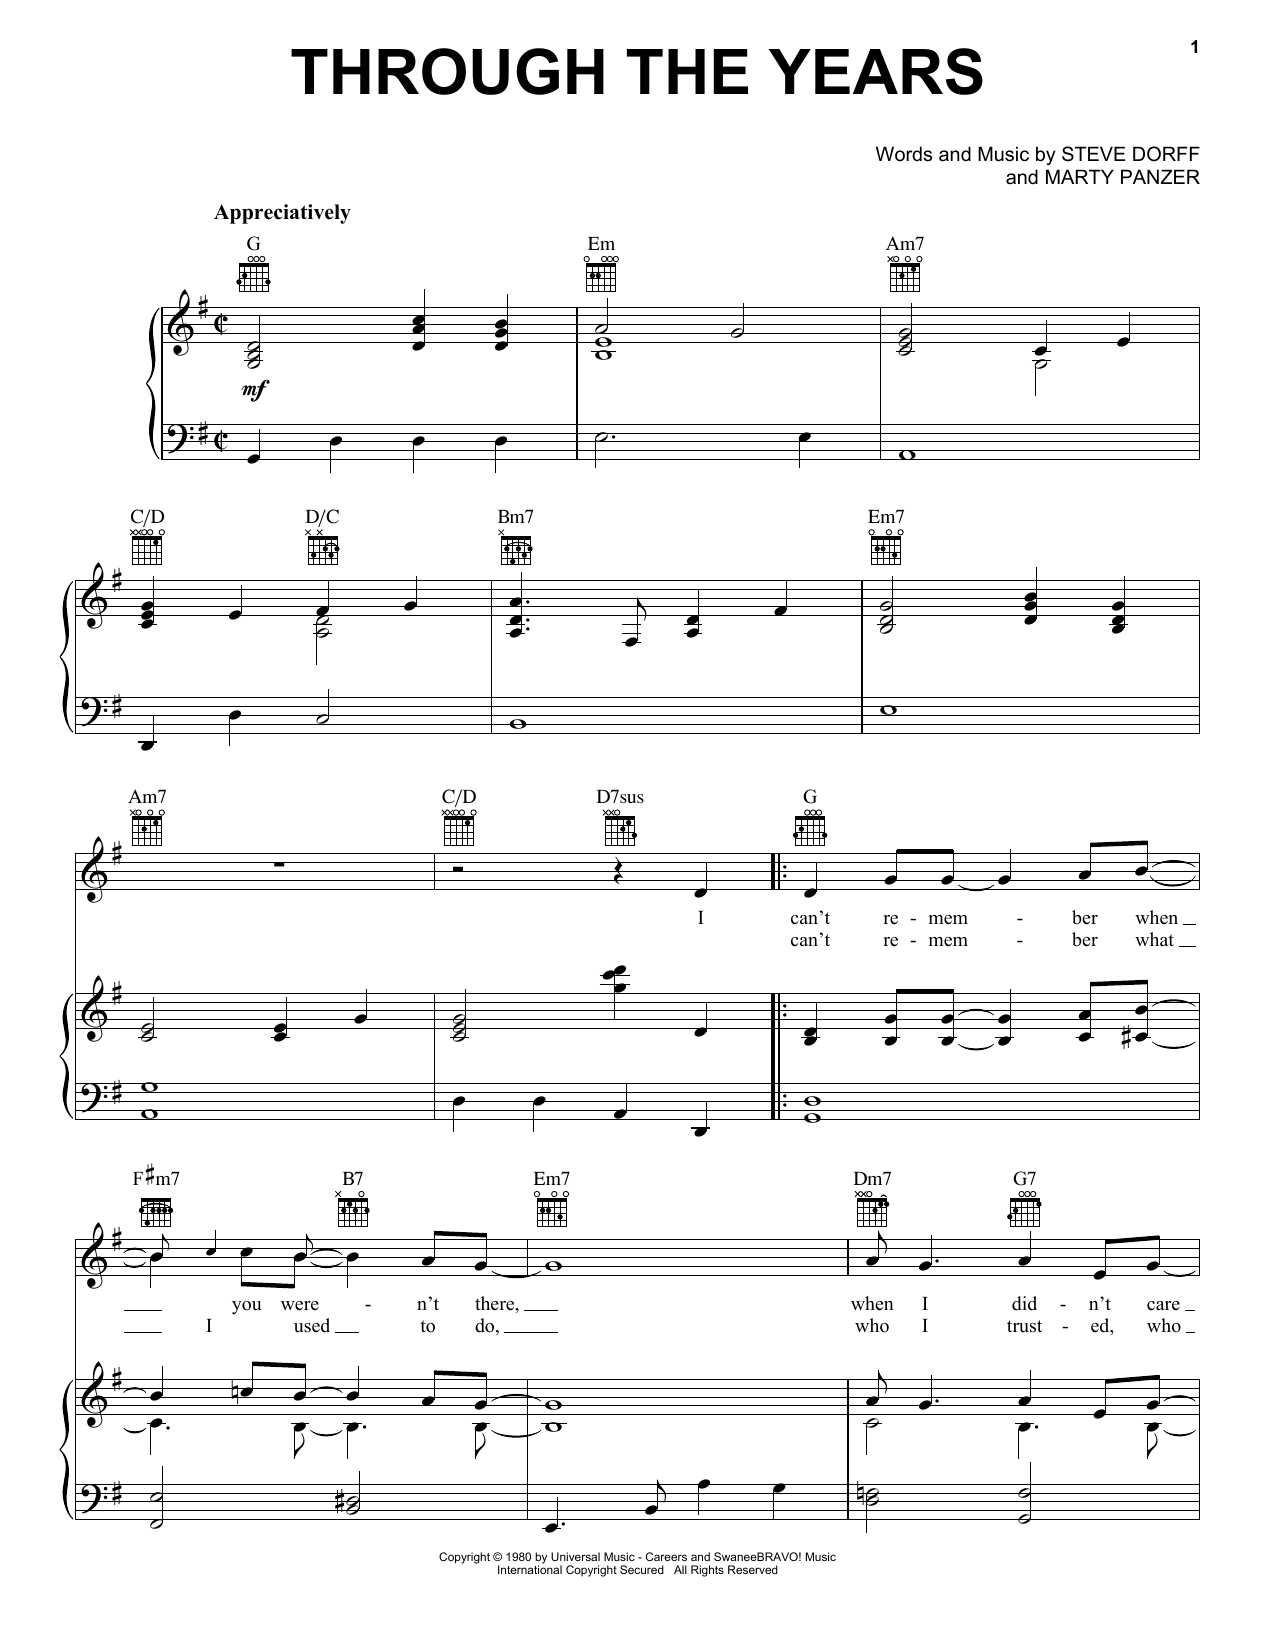 Through The Years sheet music for voice, piano or guitar by Marty Panzer